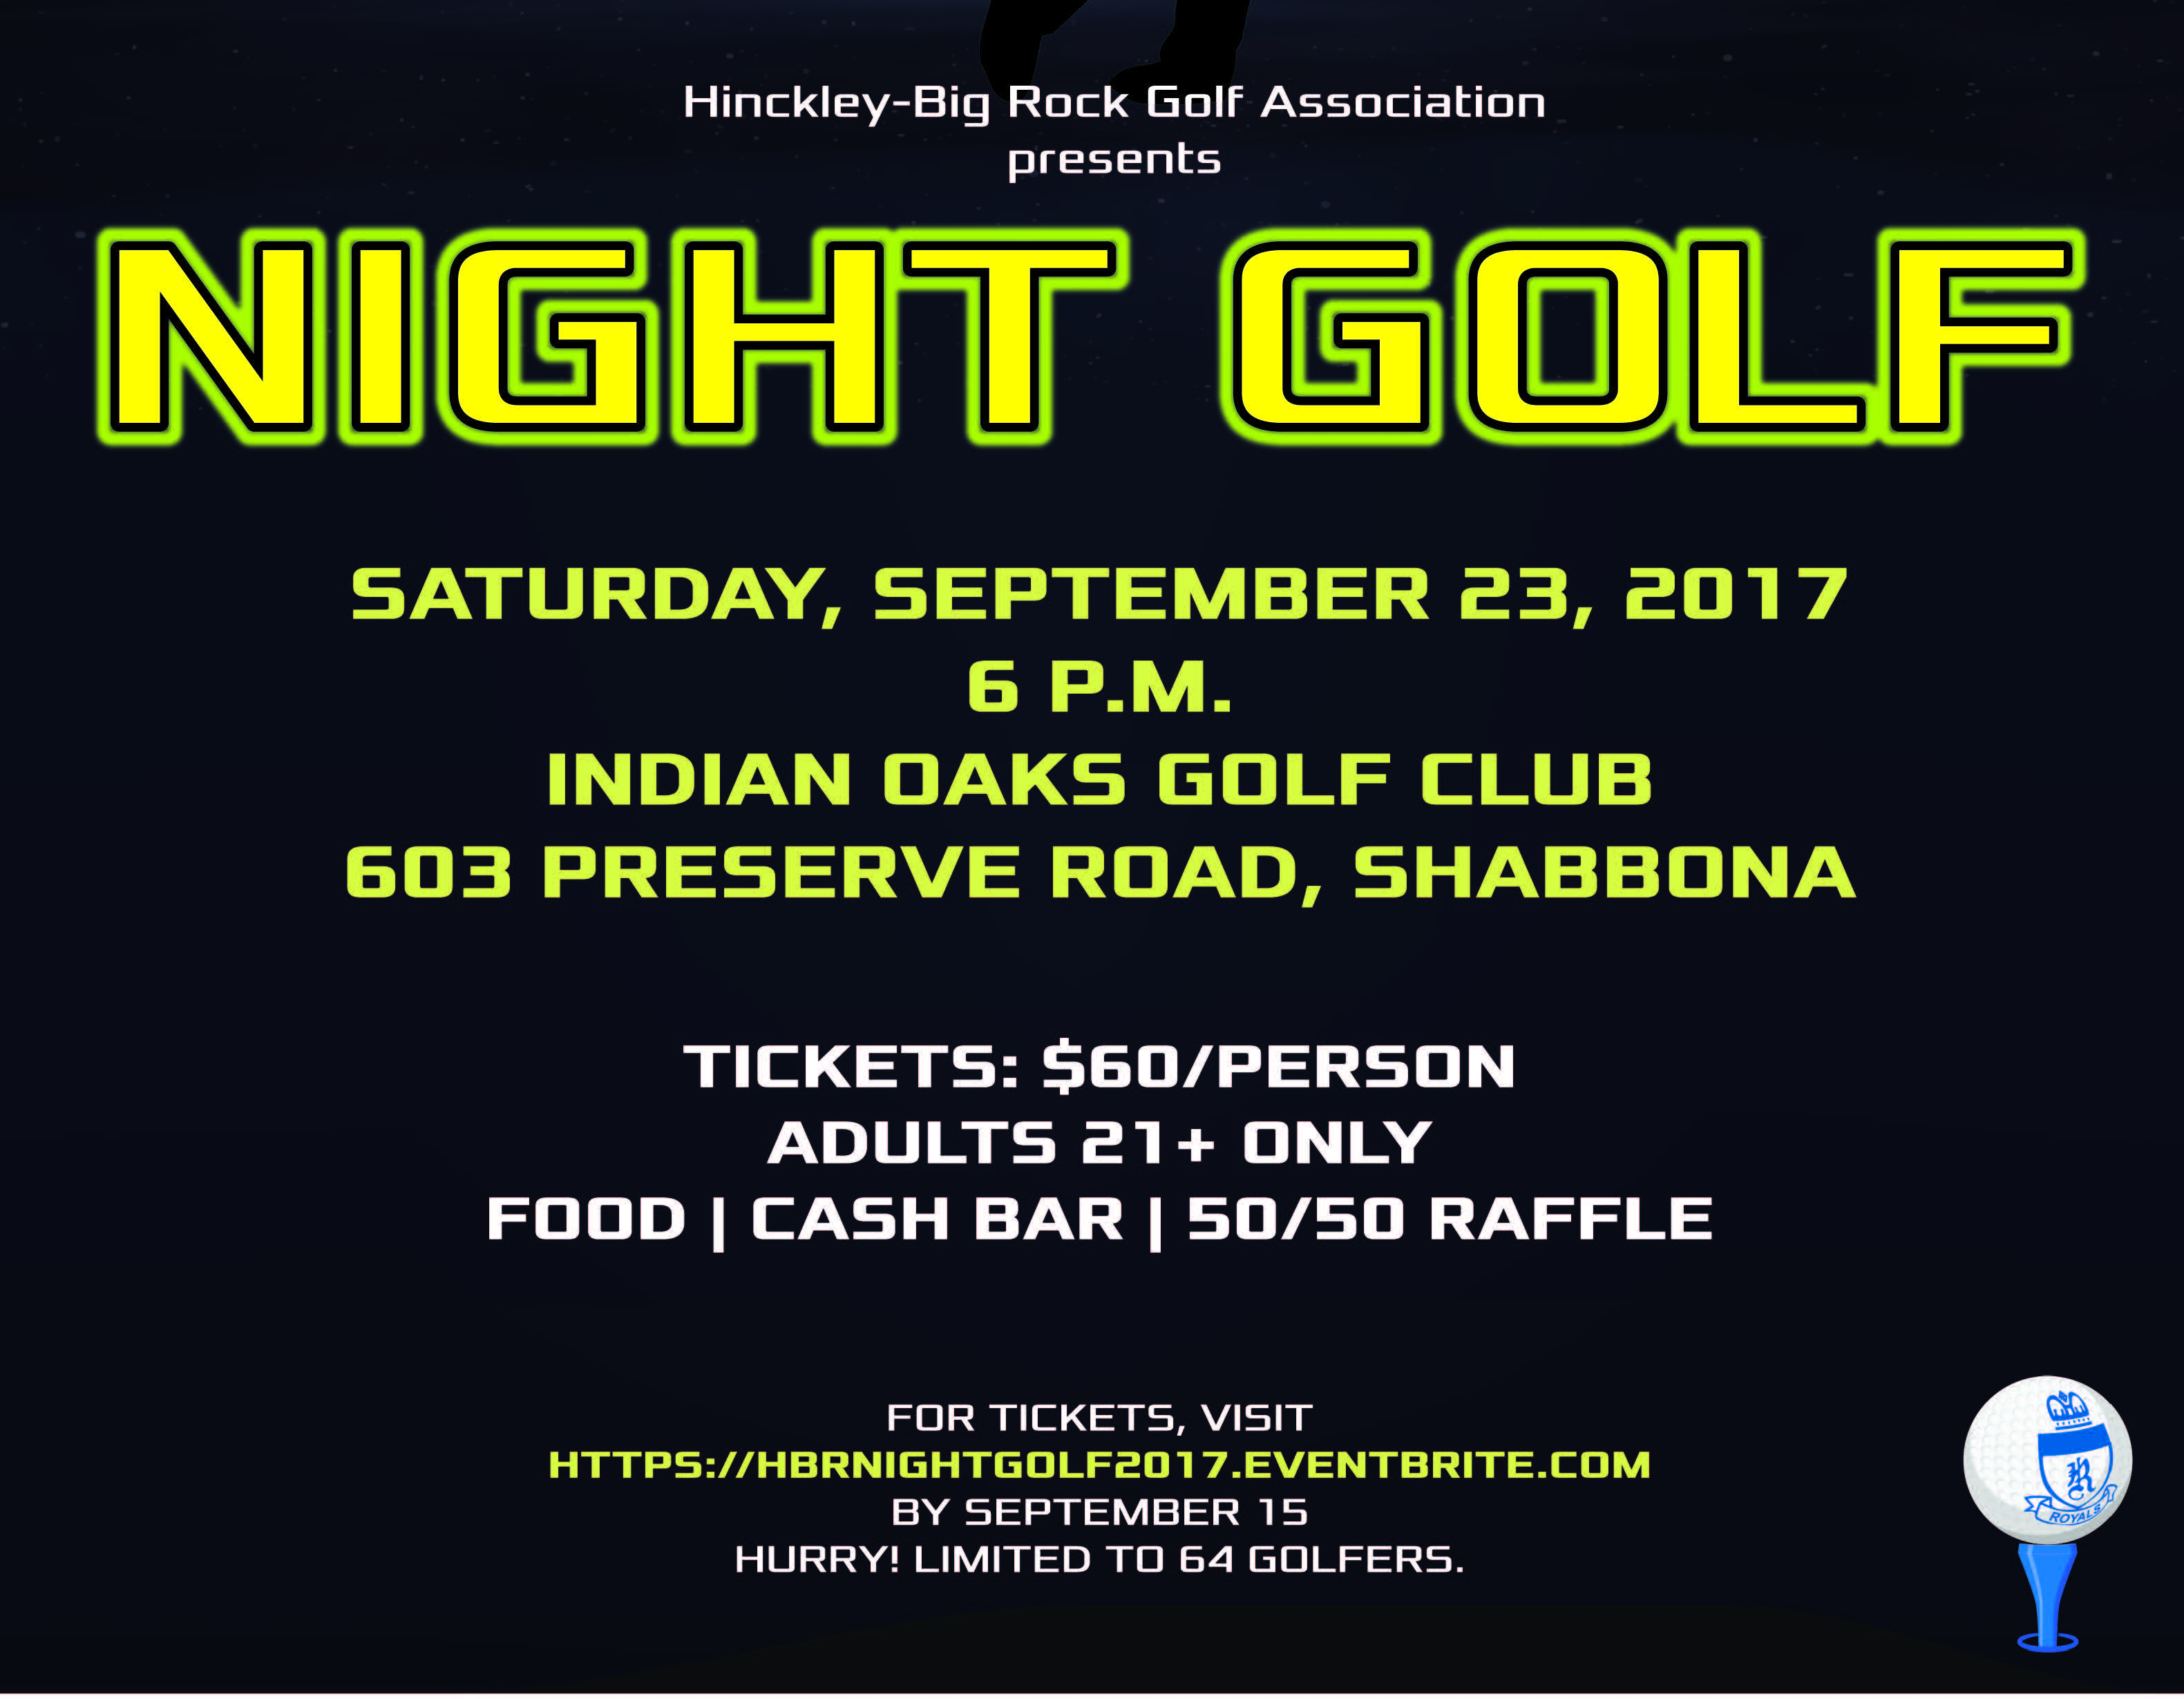 Night Golf presented by Hinckley-Big Rock Golf Association